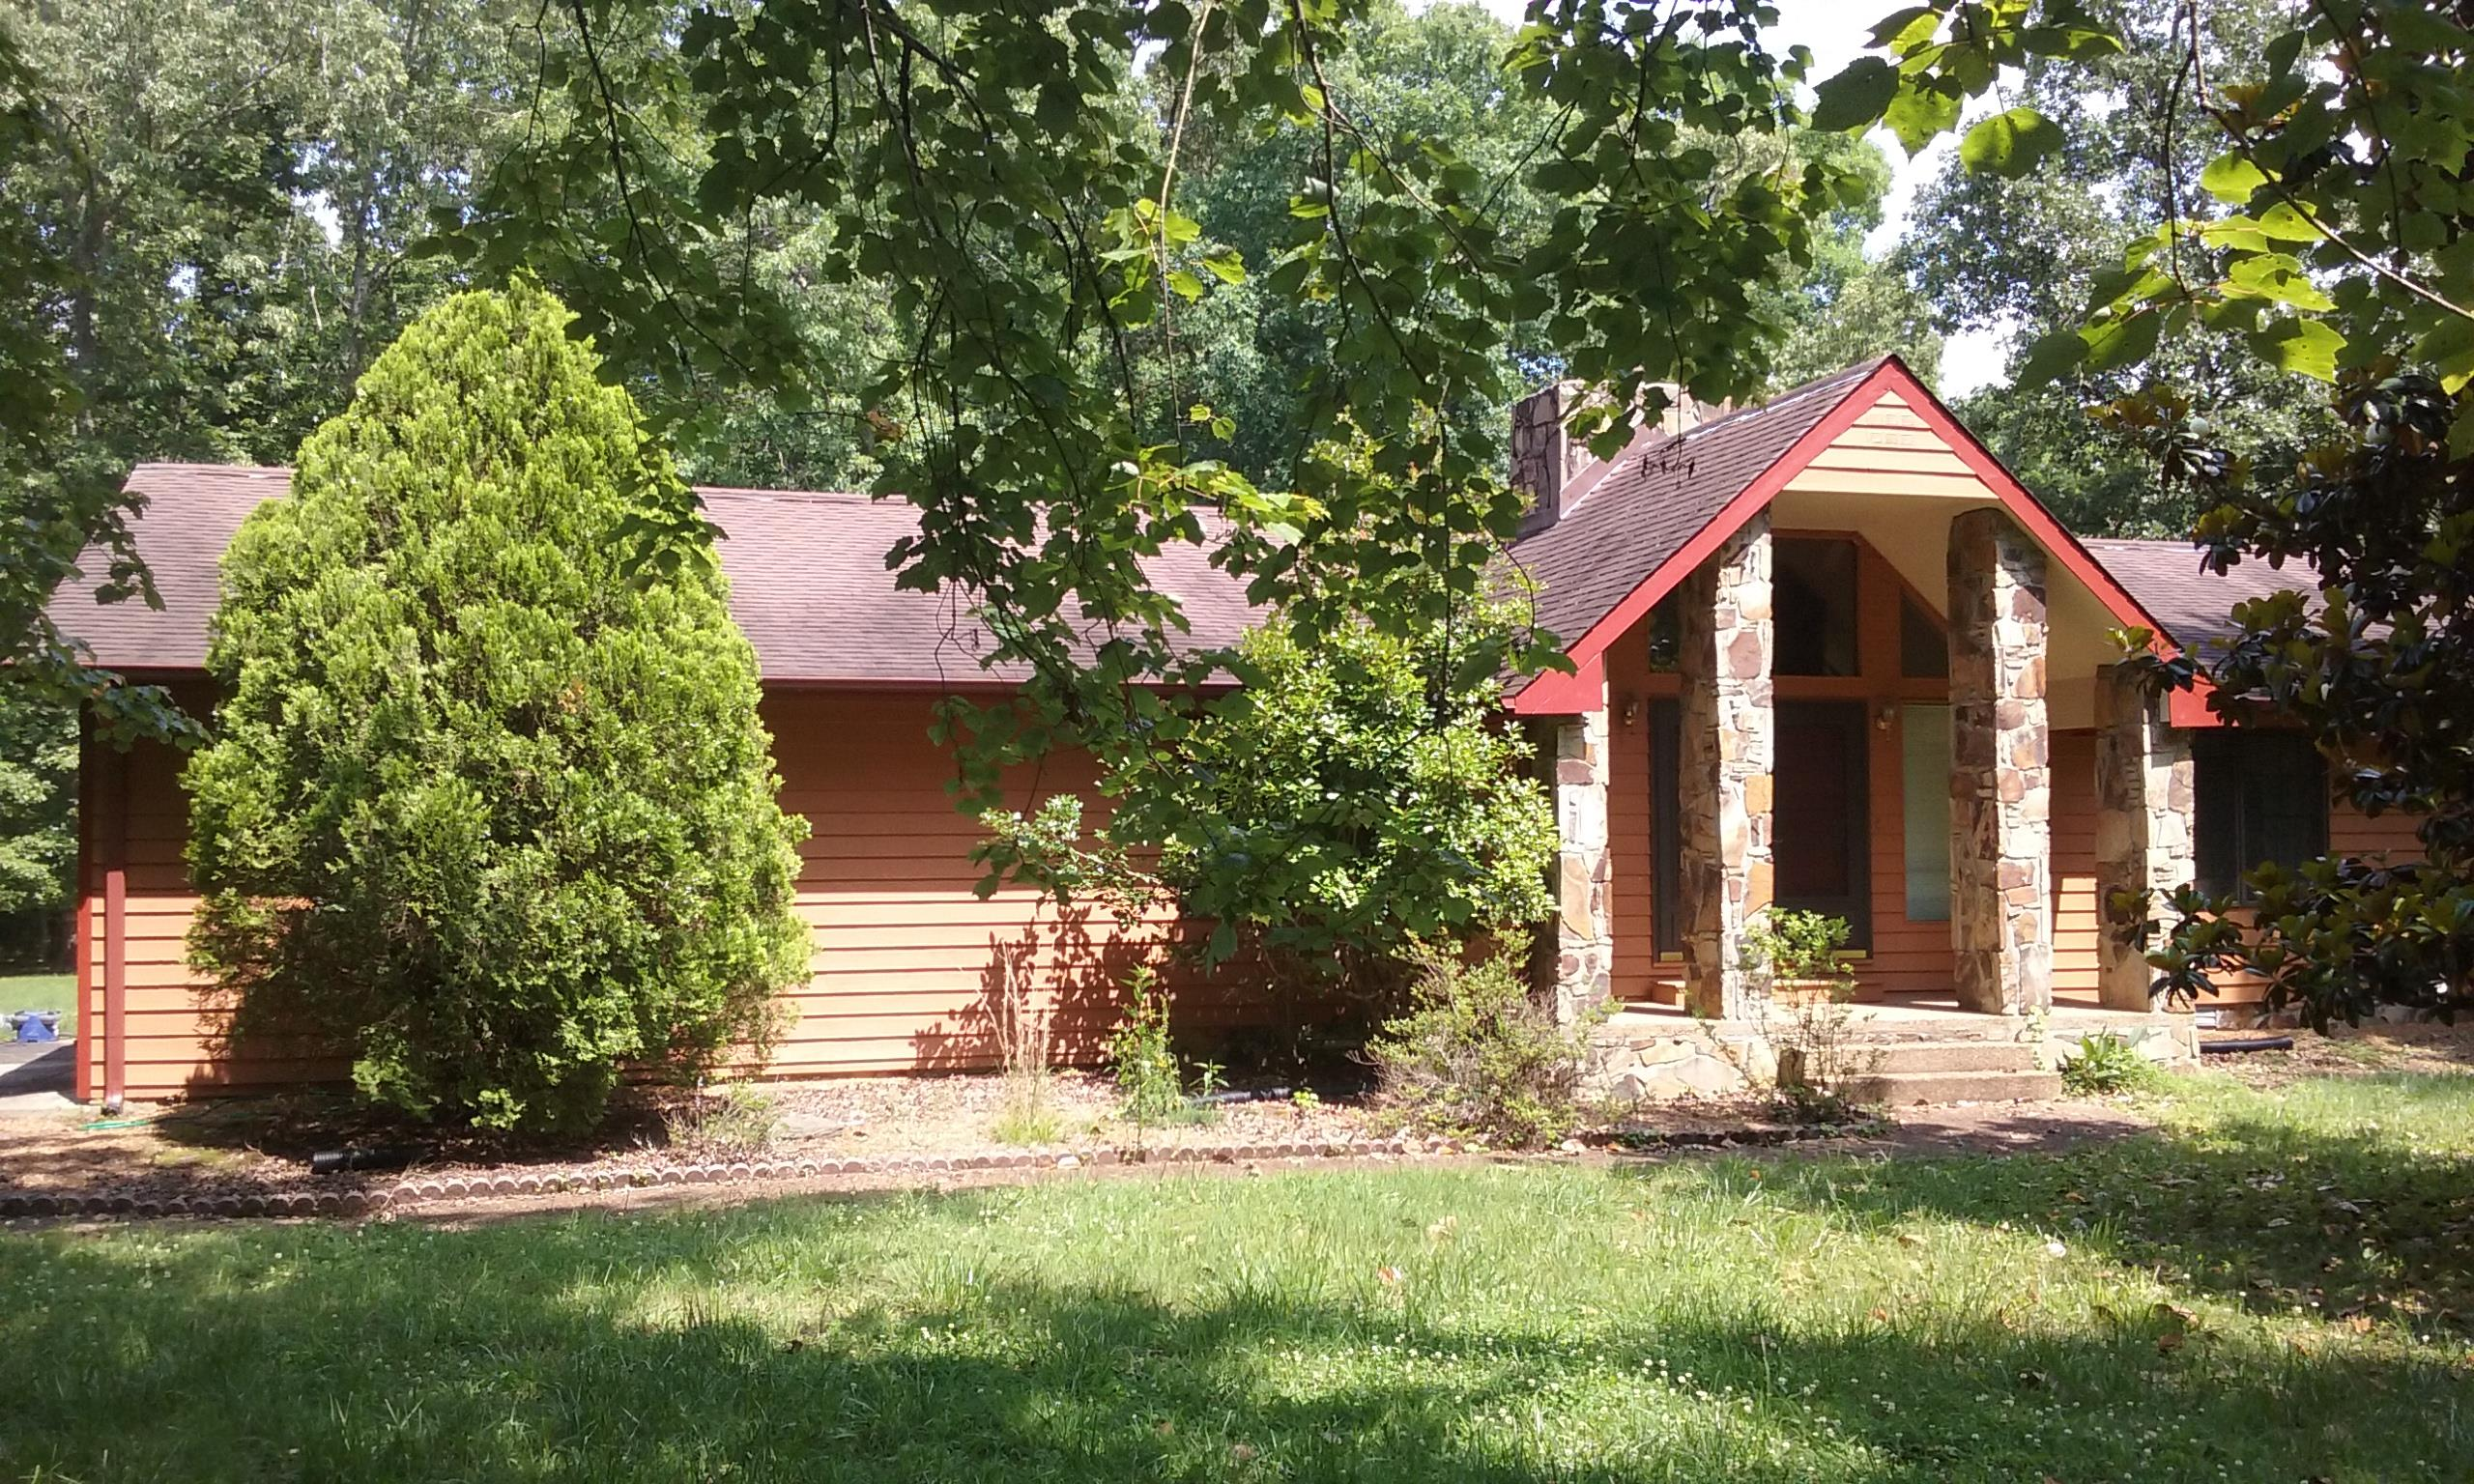 231 Prince Ln, Tullahoma, Tennessee